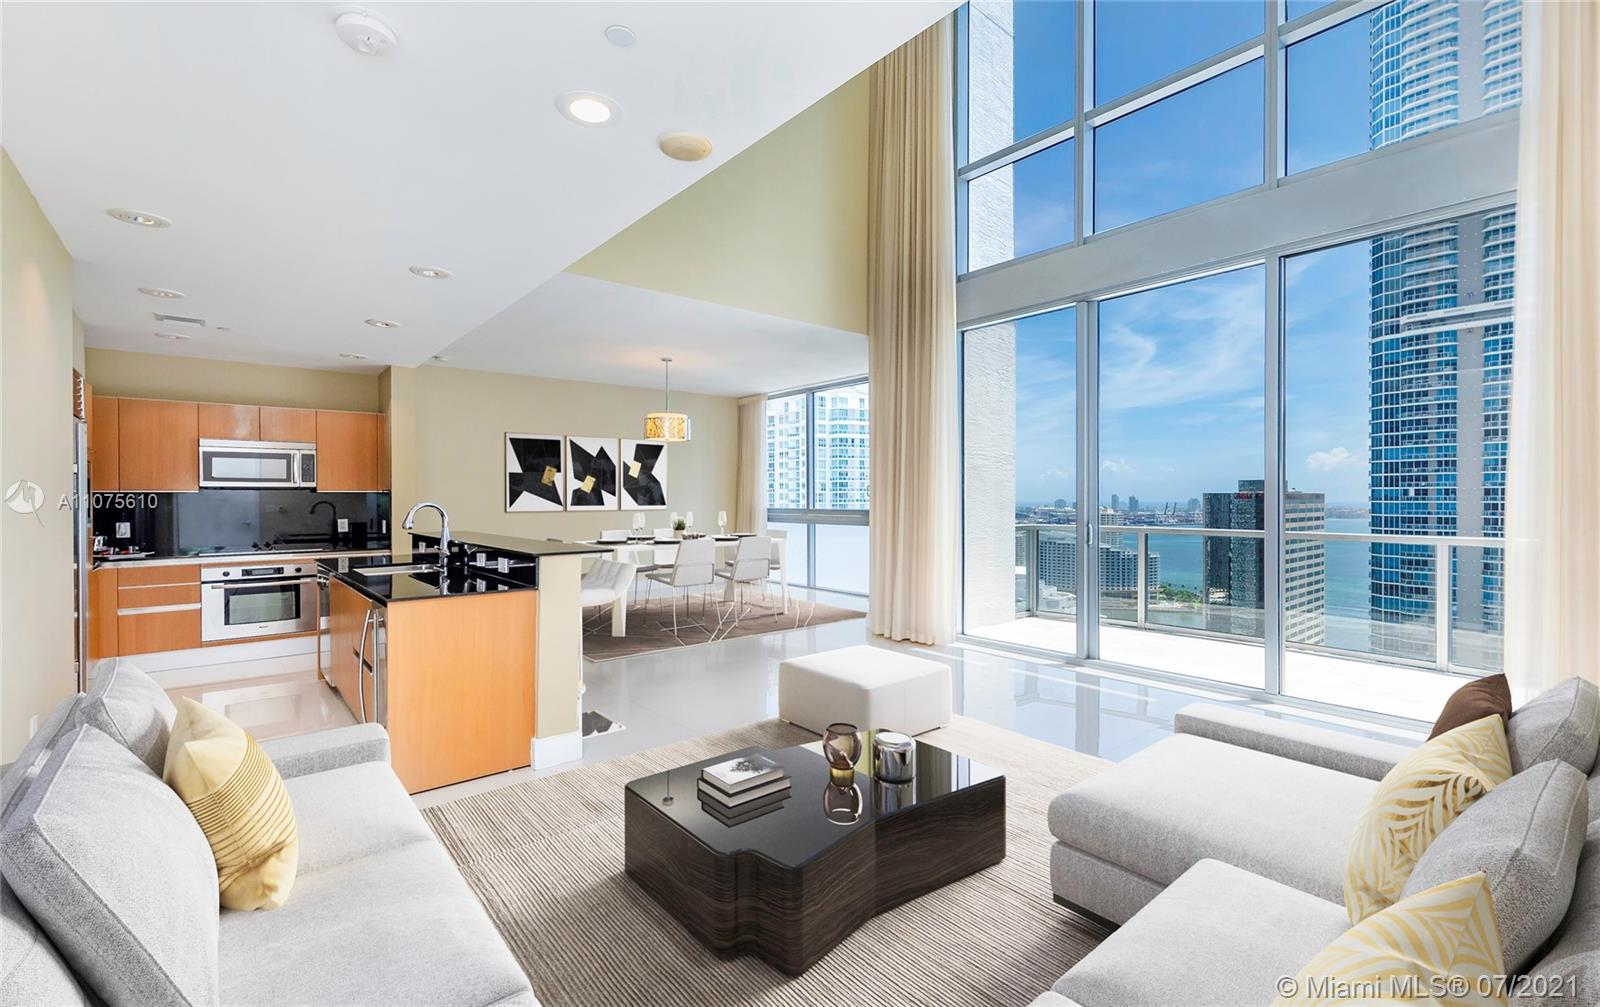 Beautiful two-story Penthouse on Brickell Avenue. Spacious floor plan which spans both the upper 34th & 35th floors. Interior features include an elegantly designed residence that boast breathtaking  bay views, towering high celling in living room, second floor split-bedroom plan plus living area, and a deep awareness of seamlessly connected living. Though the beauty of this two-story Penthouse is undeniable, it is also the myriad of thoughtful amenities that makes 1050 Brickell unforgettable. Amenities include 24-hour security and concierge, valet, fitness center, swimming pool, sundeck, game room with billiards table, yoga room, steam room, jacuzzi, spa, virtual golf room, wine lounge, and much more. Close to great shopping, fine dining and financial center. You will love coming home !